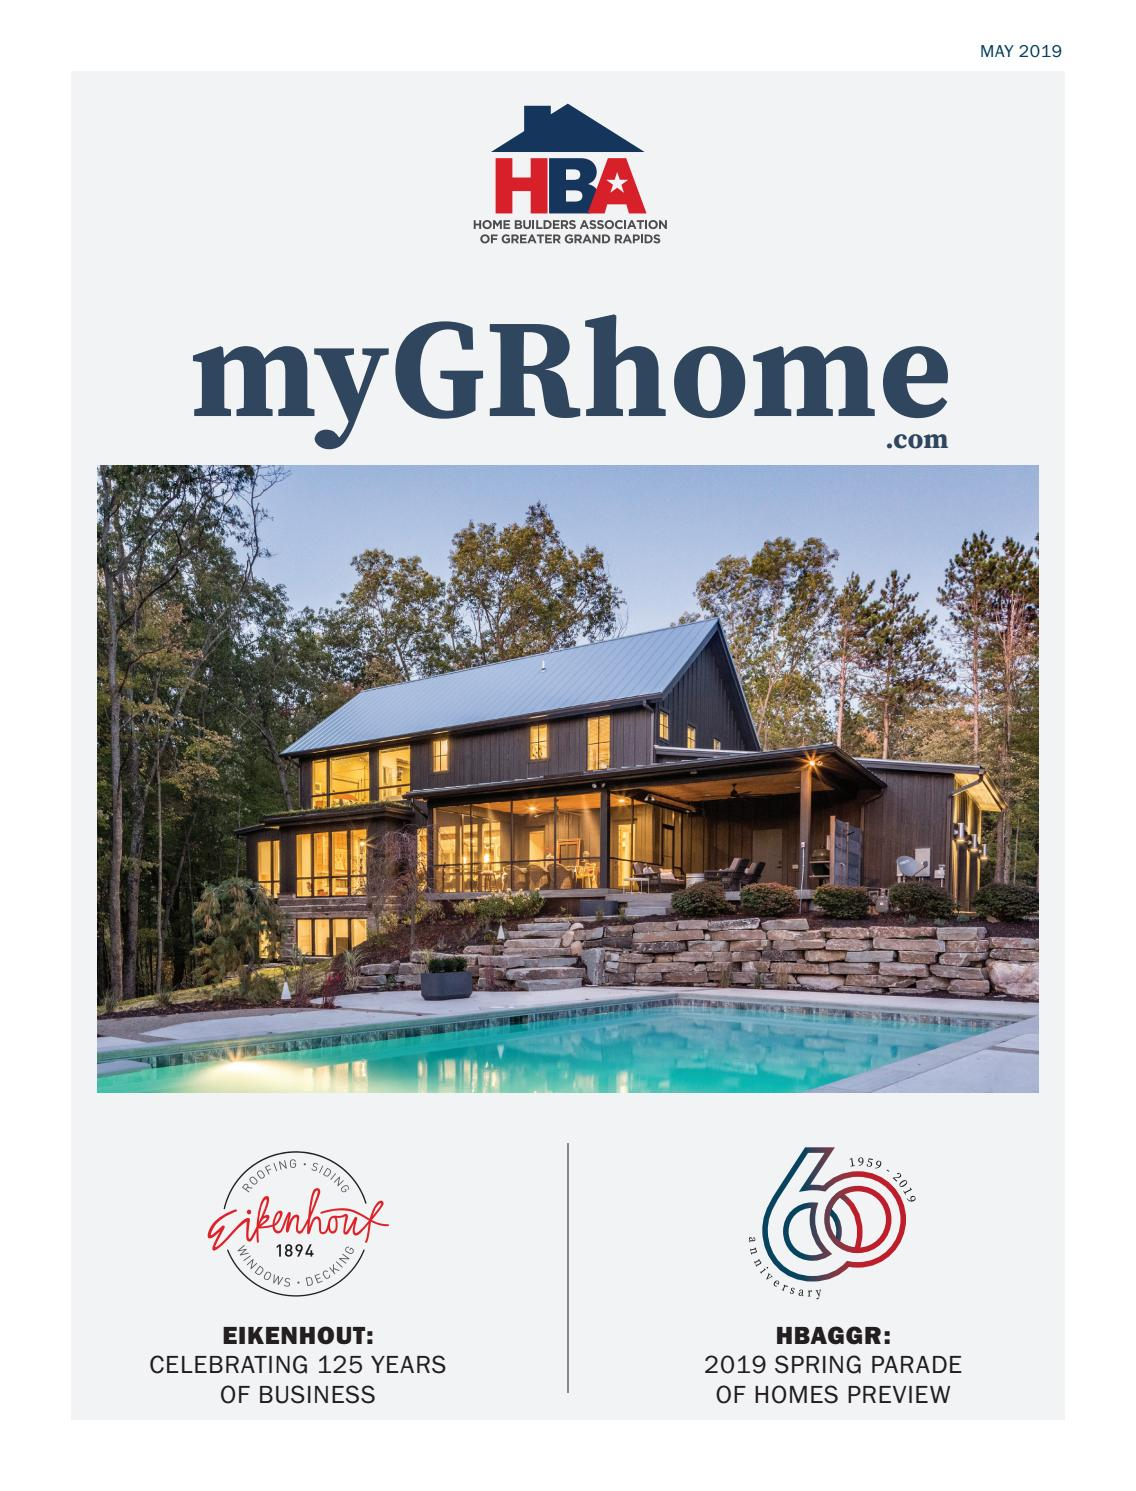 Mygrhome Spring 2019 Parade Of Homes Preview By Home Builders Association Of Greater Grand Rapids Issuu